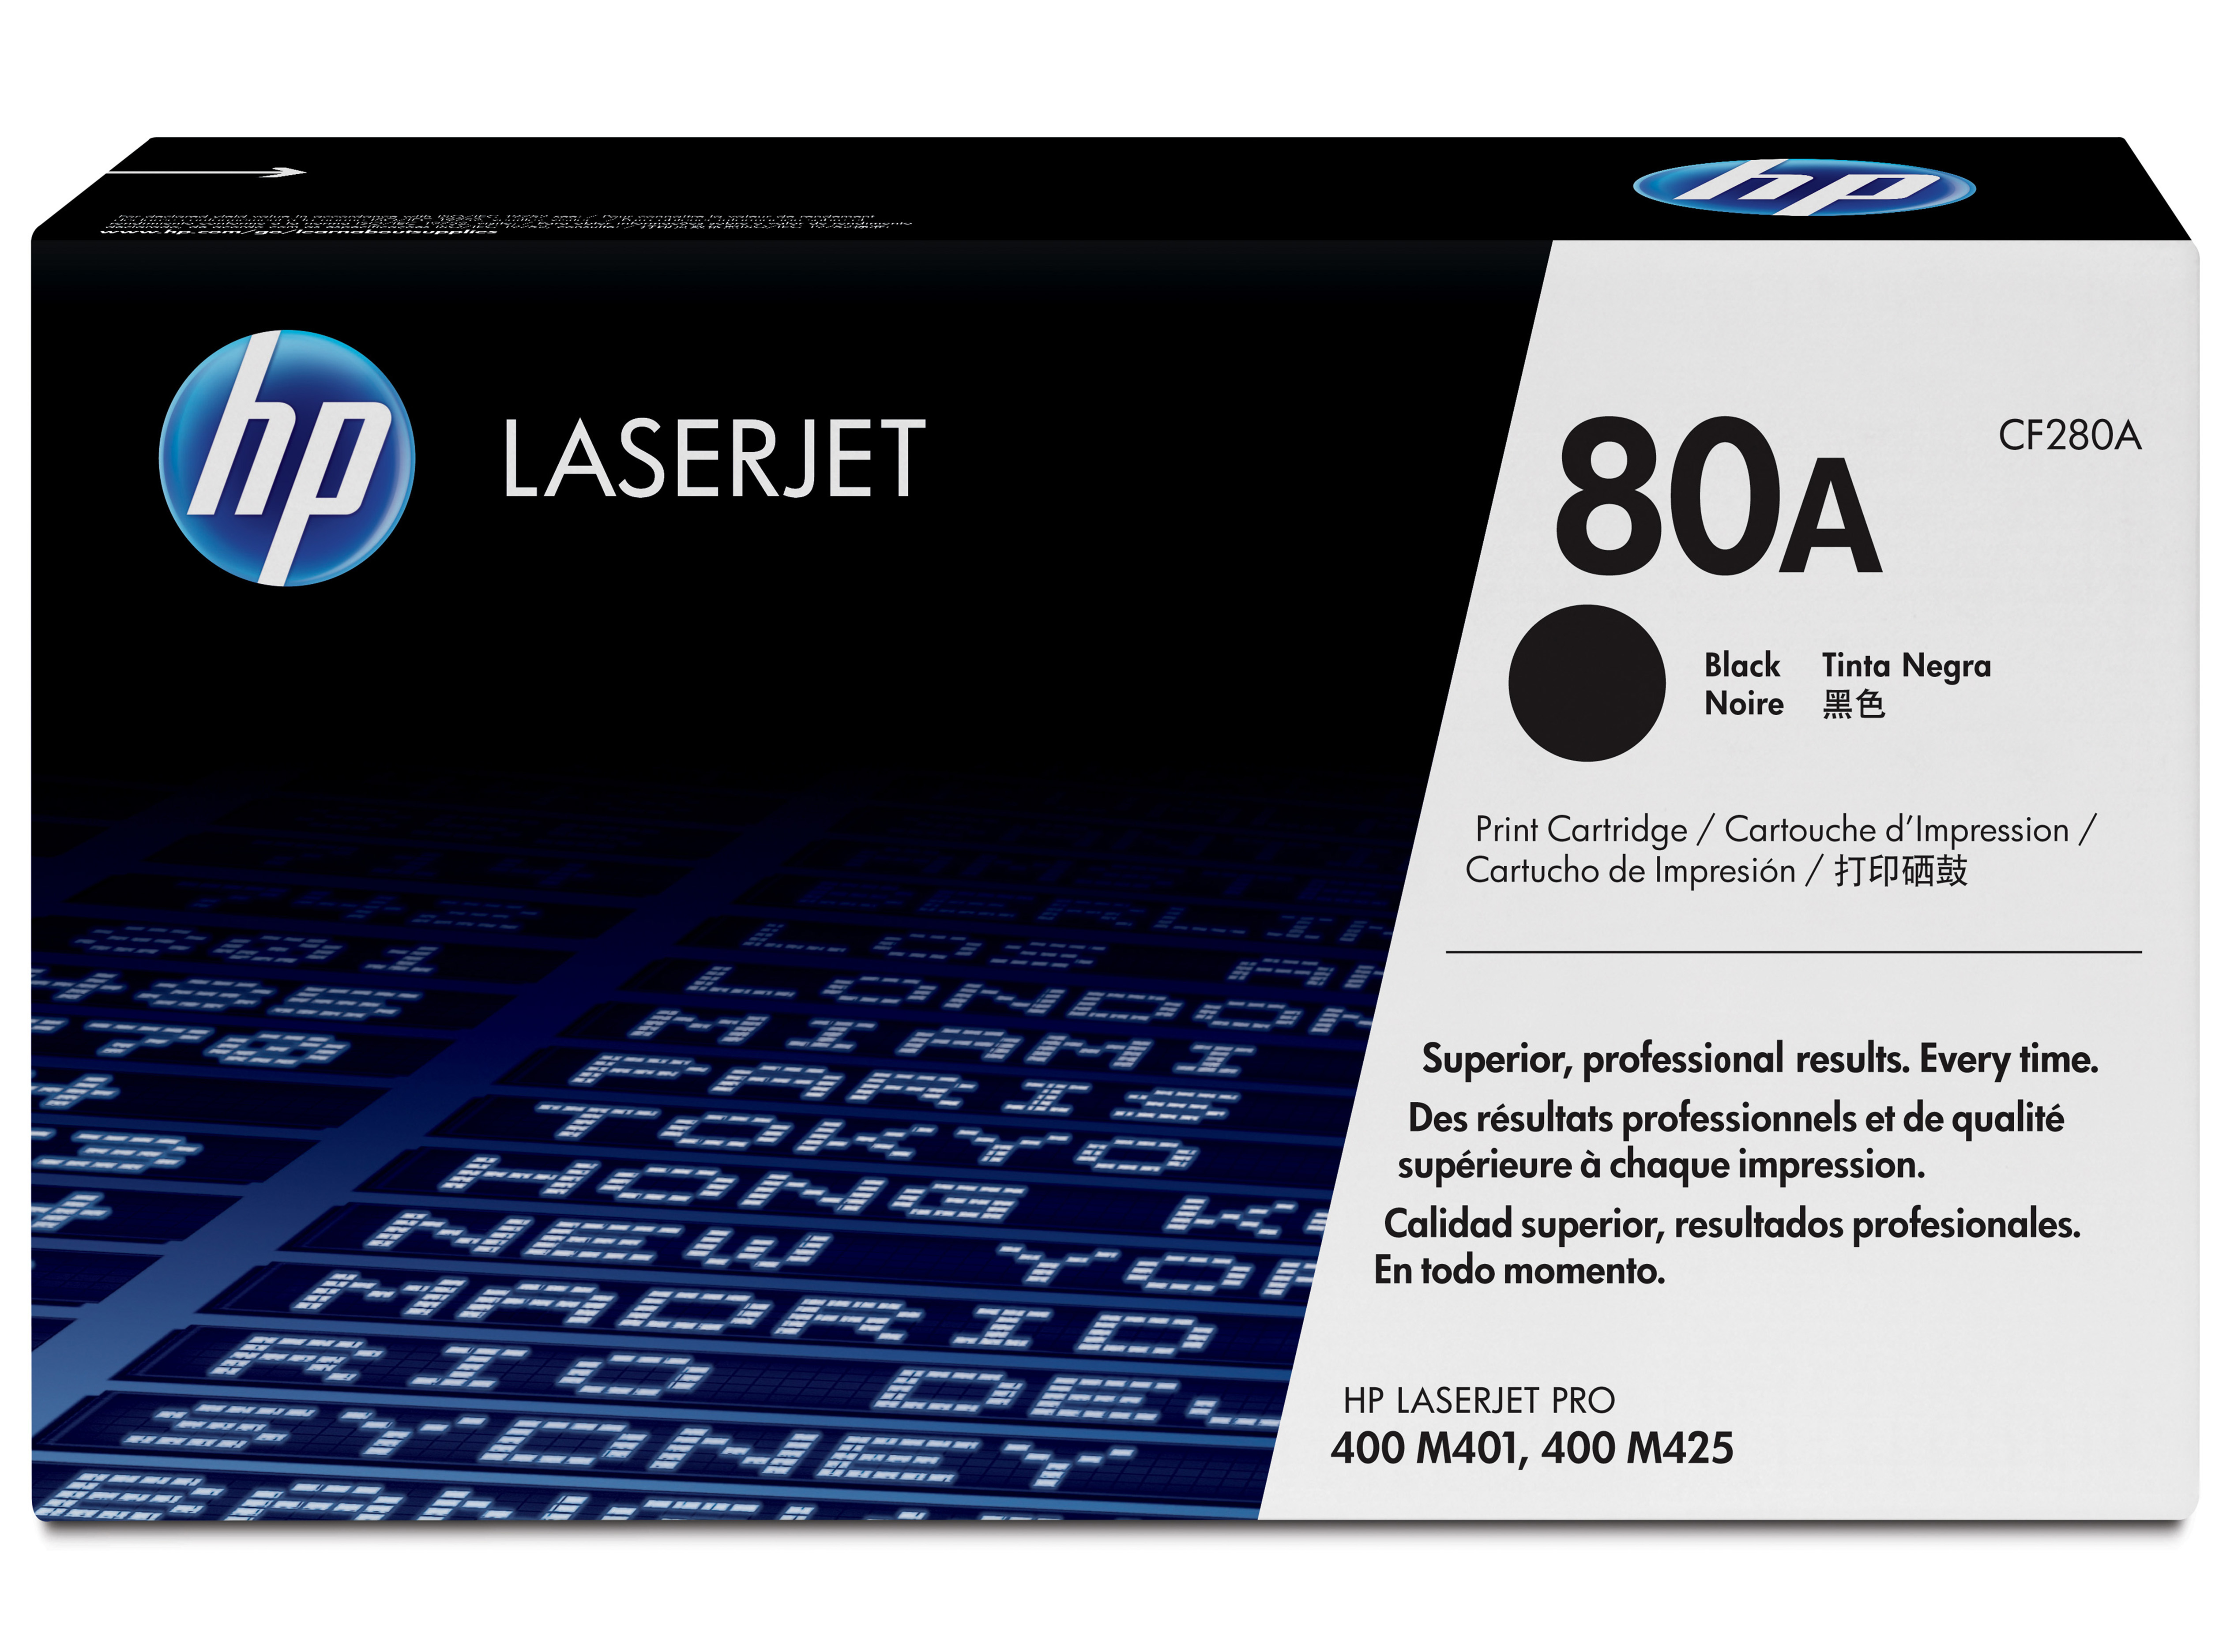 Hp - Laserjet Supply (pl5t) Lvs  Toner Cartridge 80a Black           .                                   Cf280a